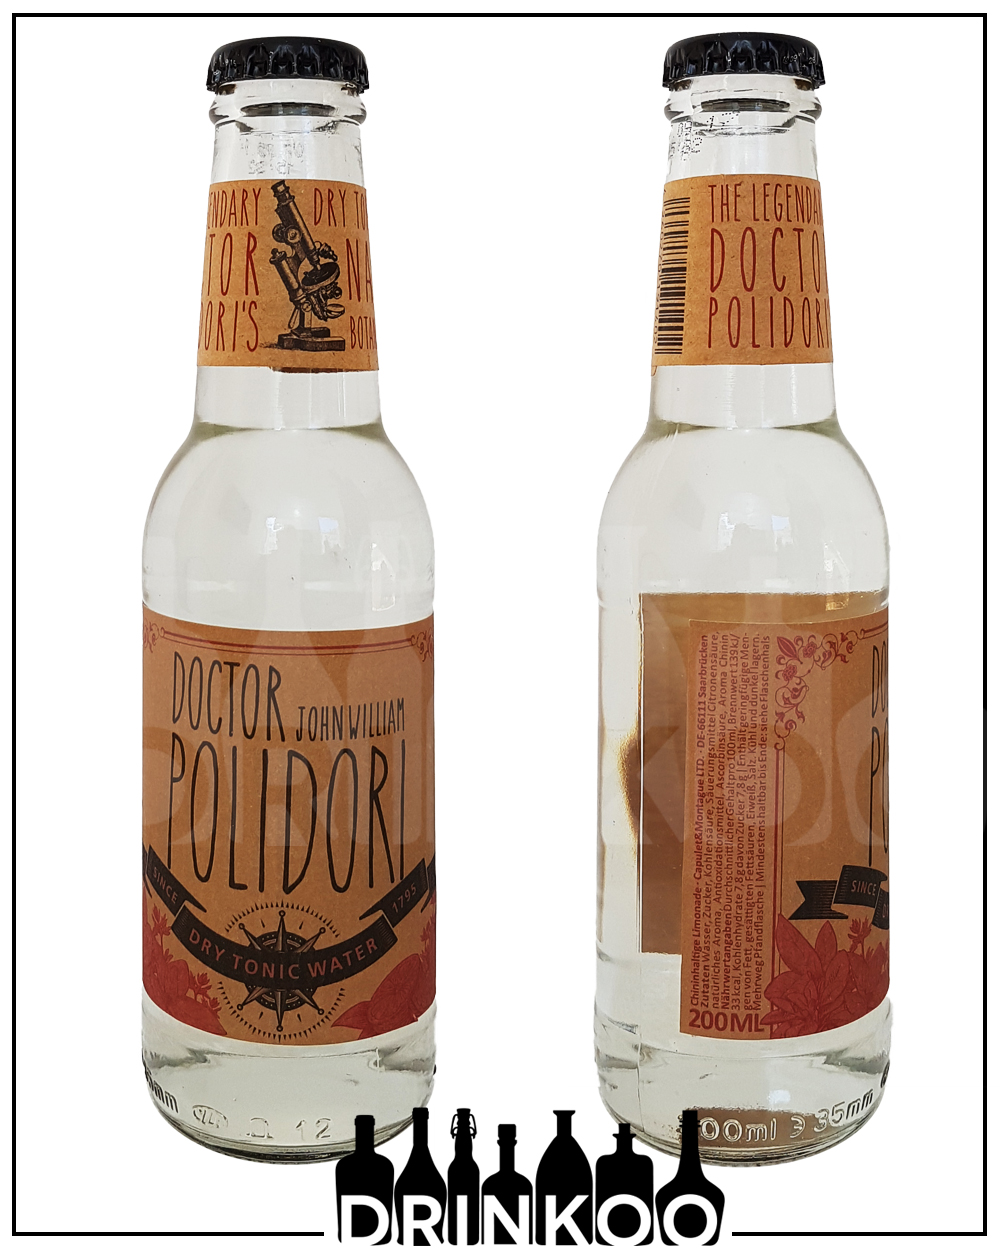 Doctor Polidori Dry Tonic Water